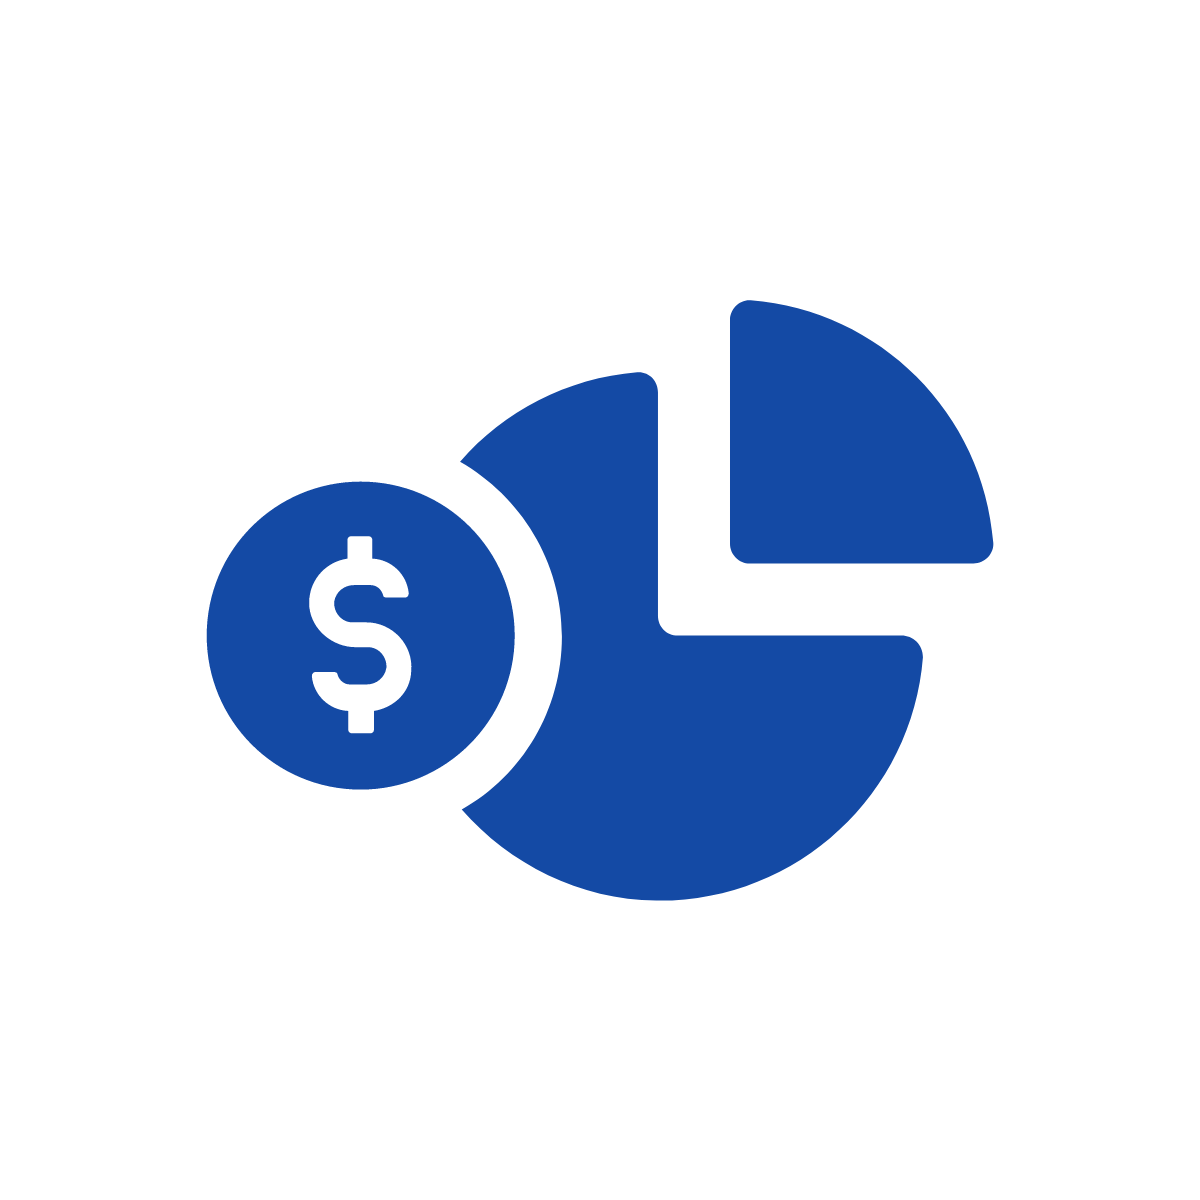 pie chart with dollar sign